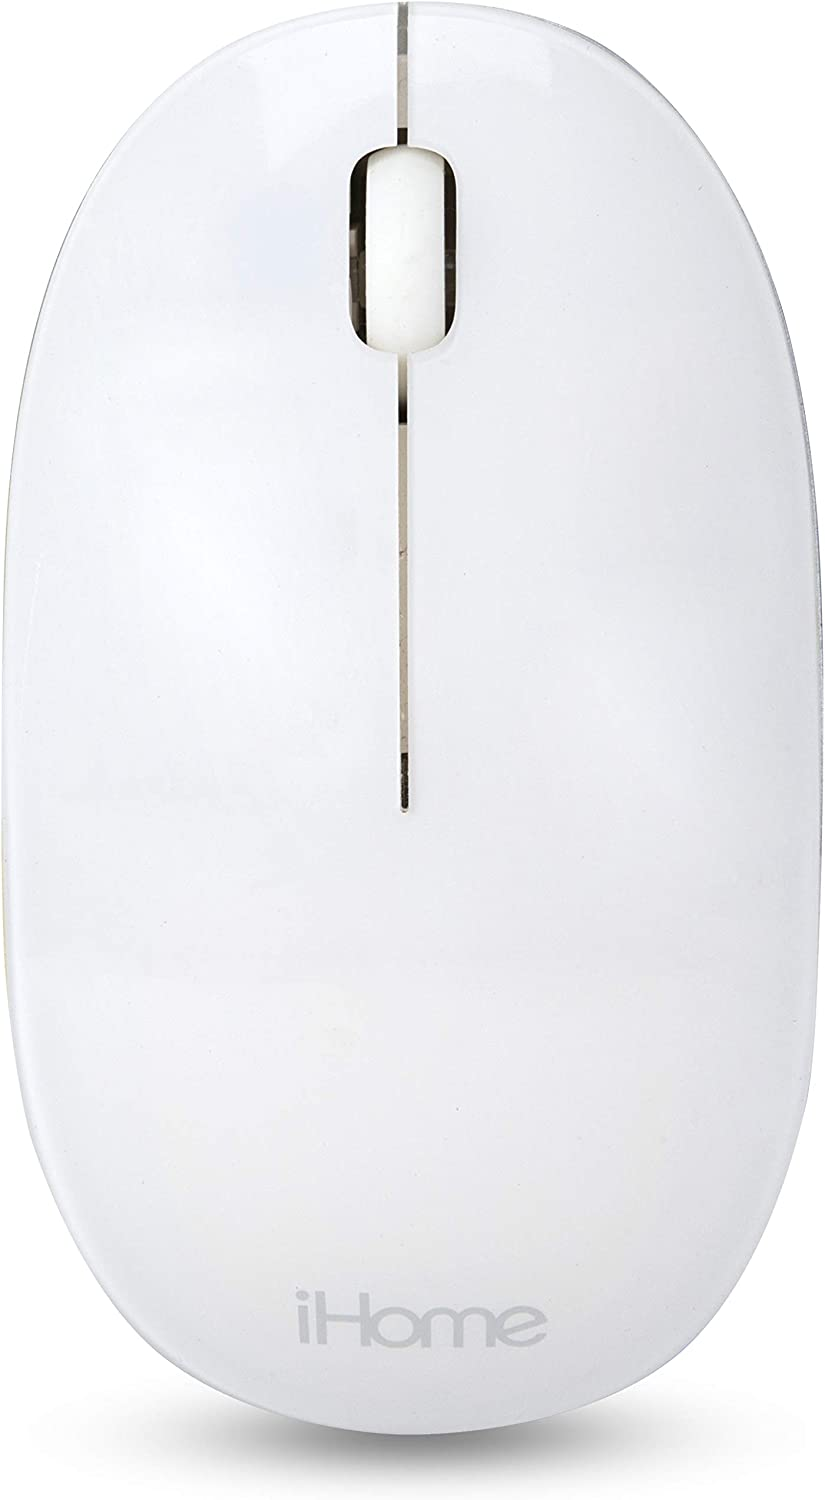 iHome Bluetooth Mac Mouse with Scroll Wheel, 3-Buttons, 1600 DPI, Laptops and Computers, Slim and Compact, Right or Left Hand Use, White